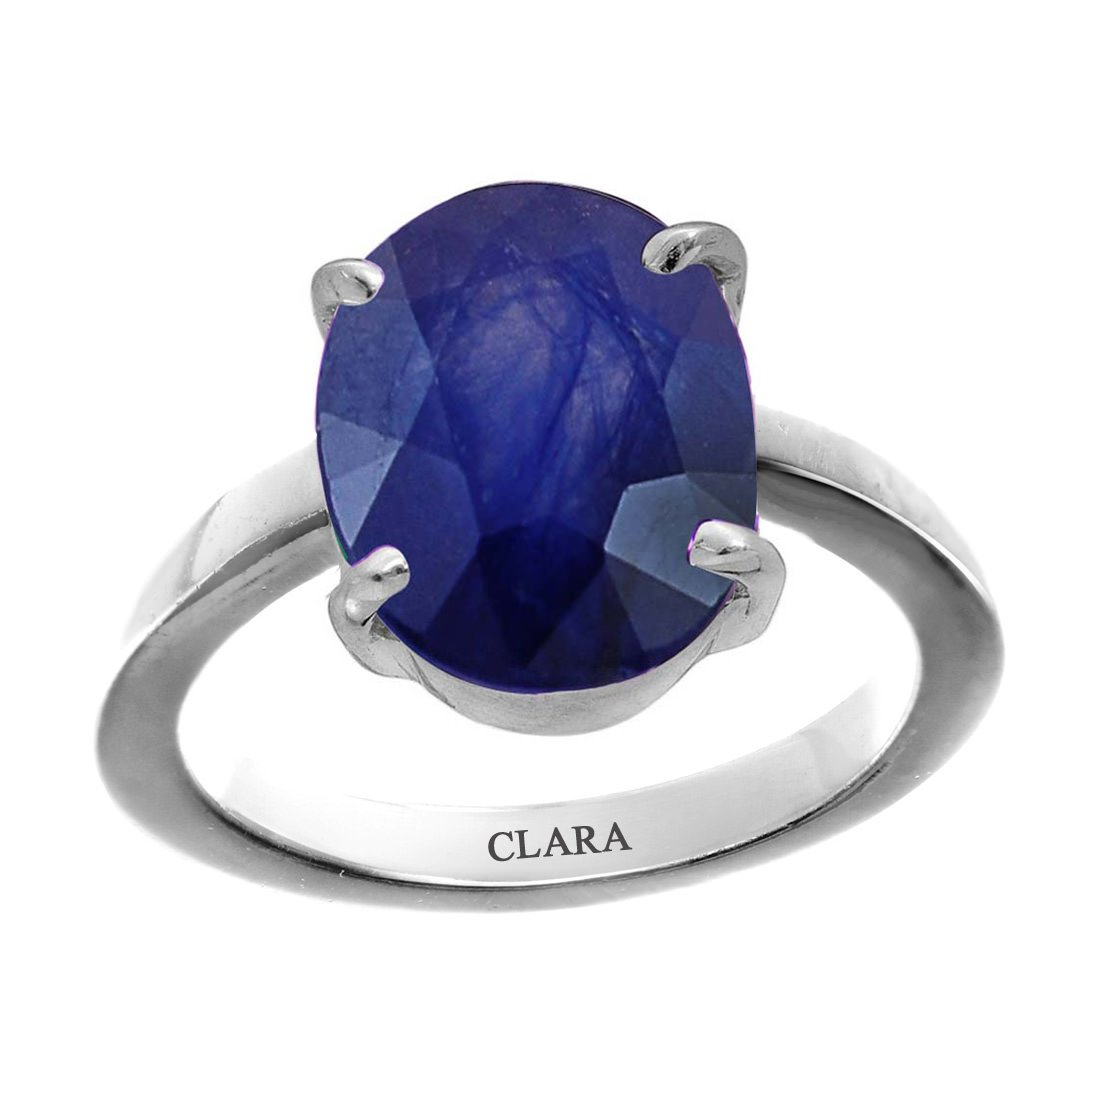 Clara Certified Blue Sapphire (Neelam) 8.3cts or 9.25ratti original stone Sterling Silver Astrological Ring for Men and Women